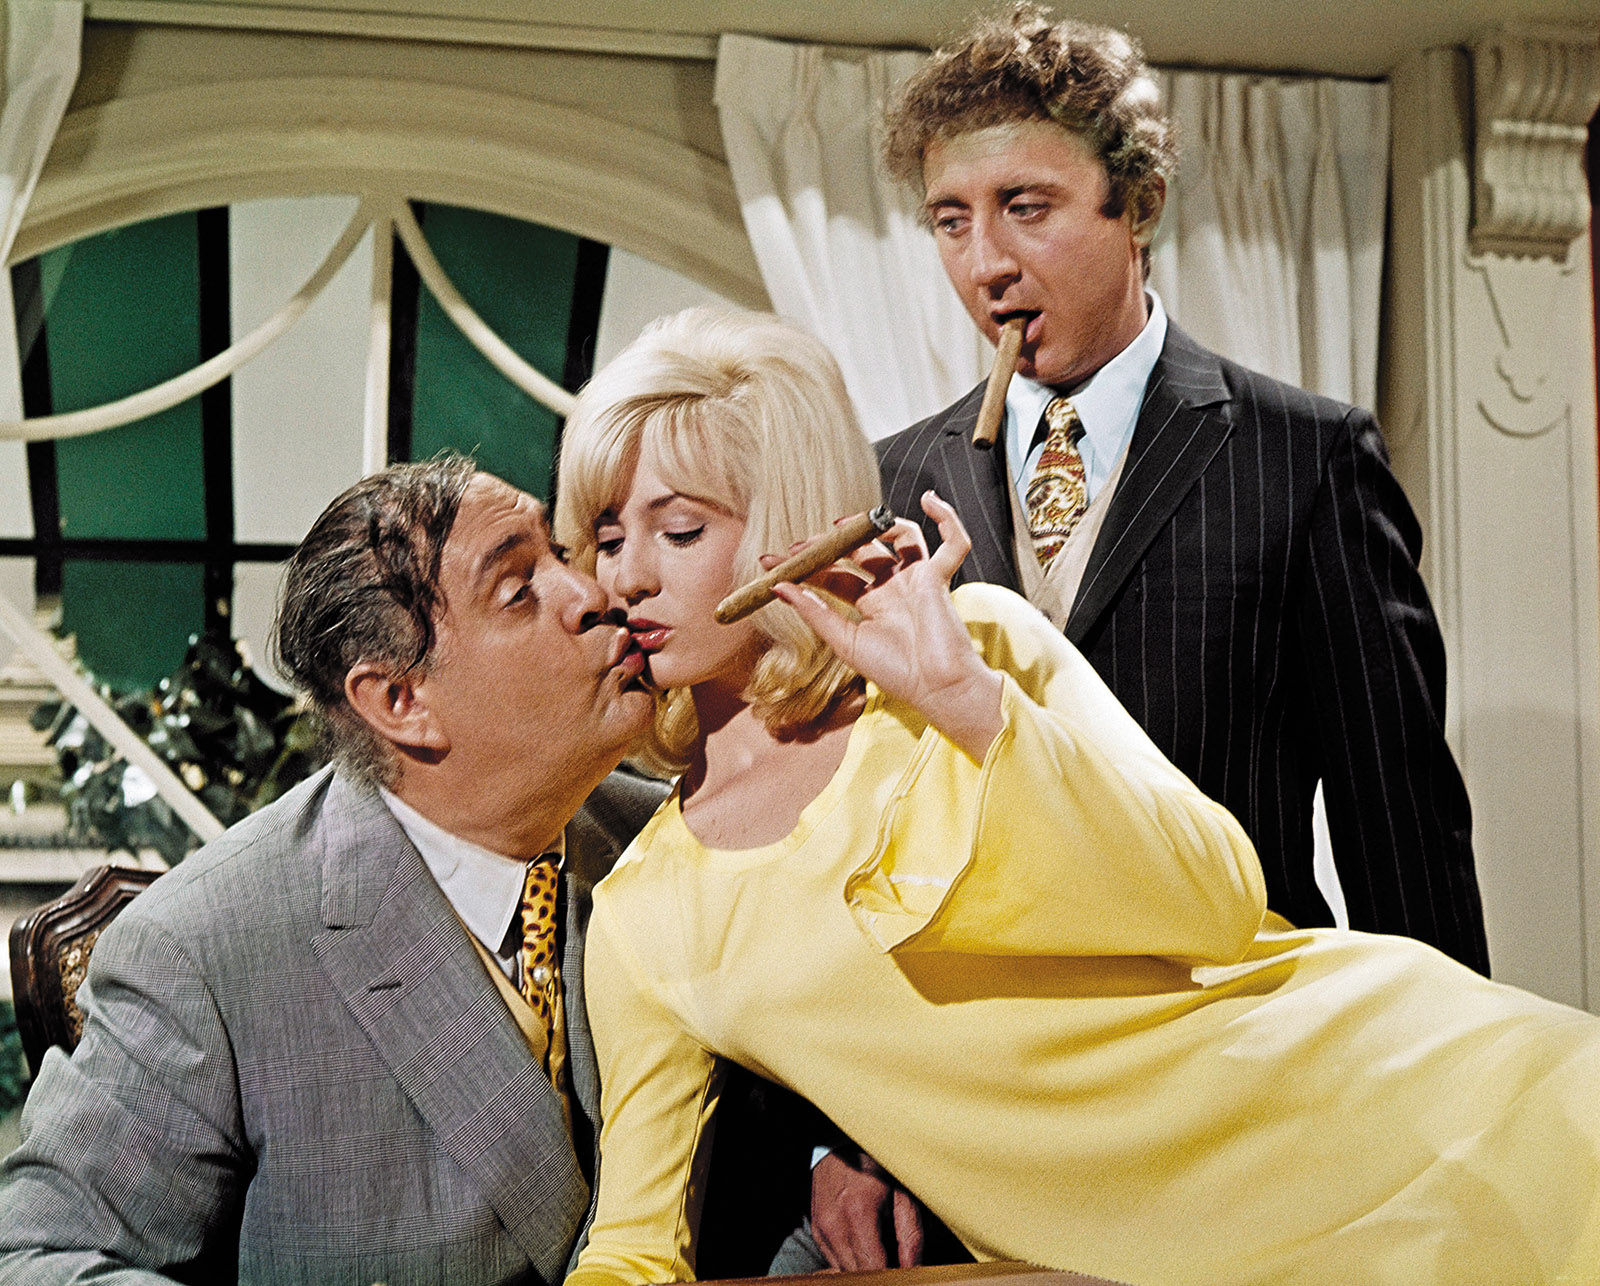 Zero Mostel, Lee Meredith, and Gene Wilder in Mel Brooks's The Producers, 1967